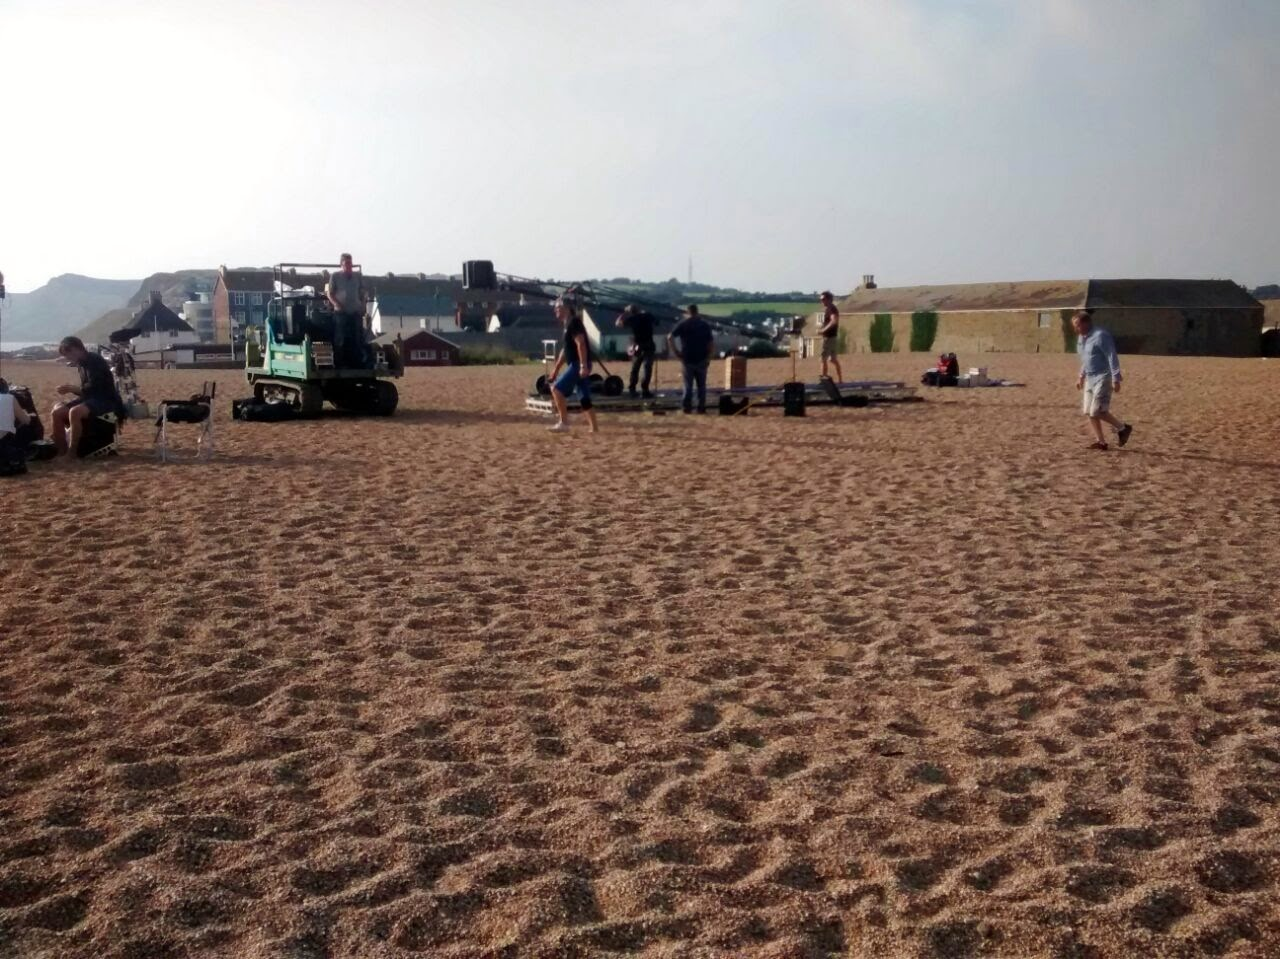 broadchurch filming series 2